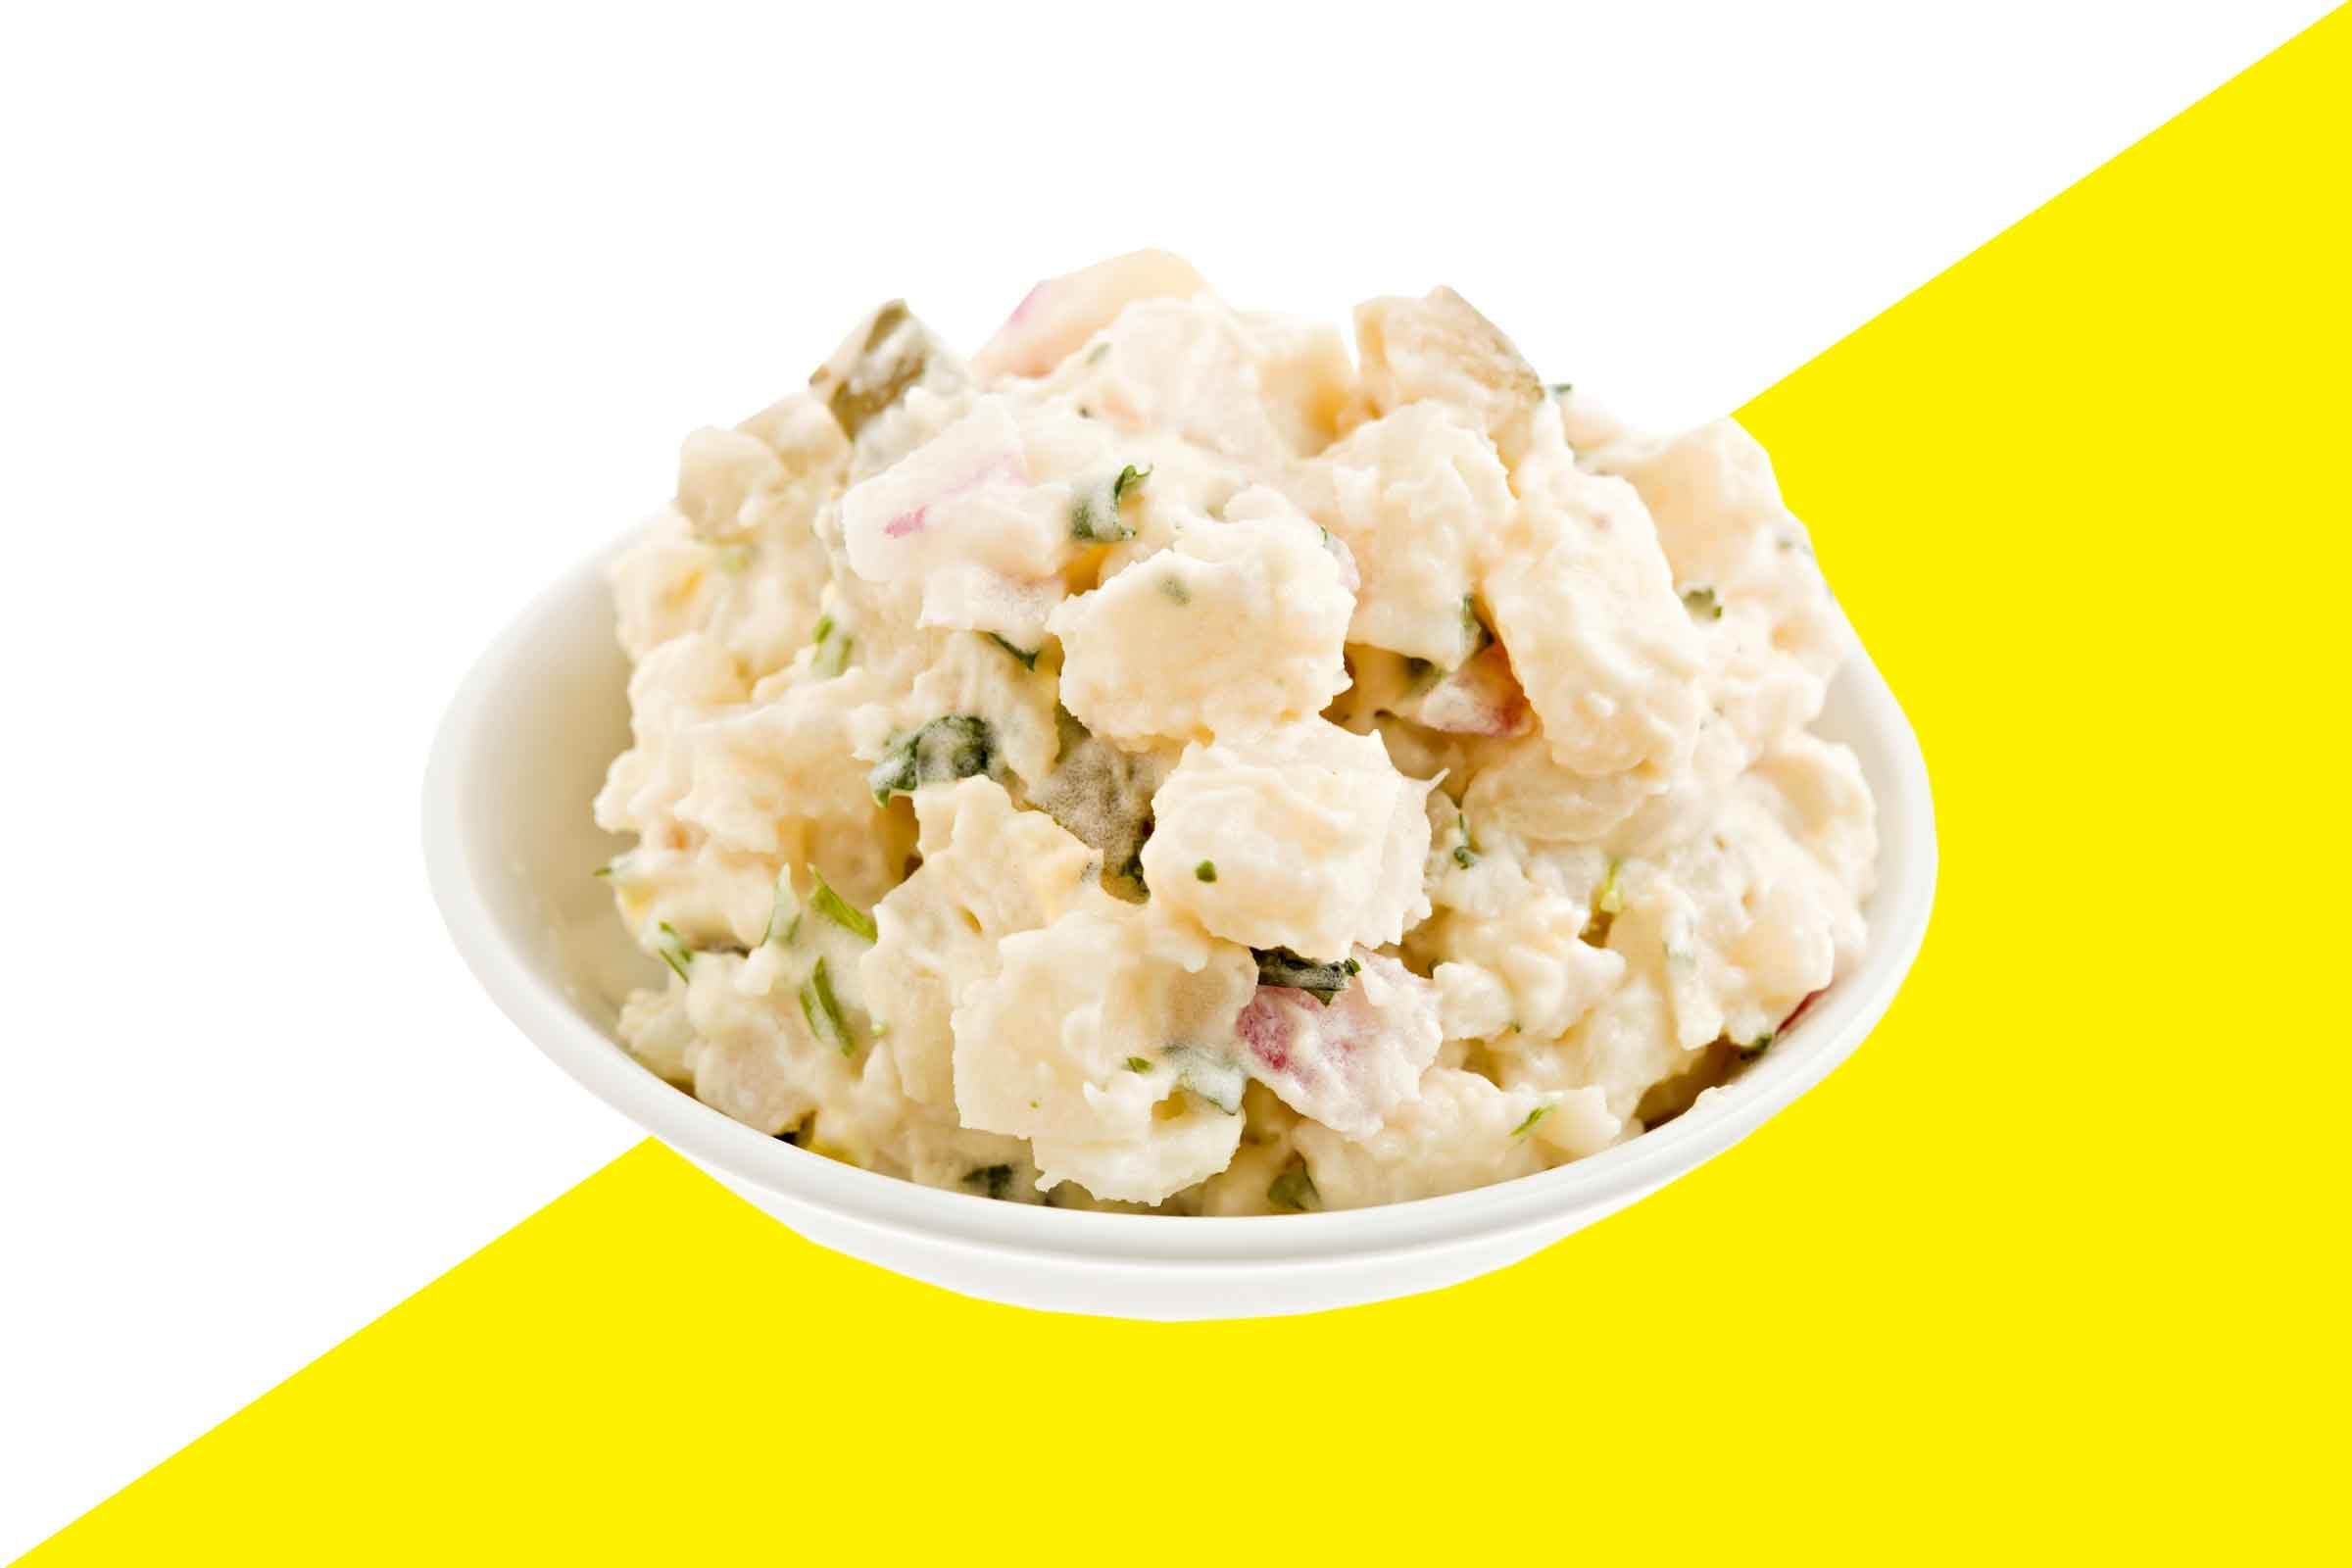 Can Egg Salad Cause Food Poisoning